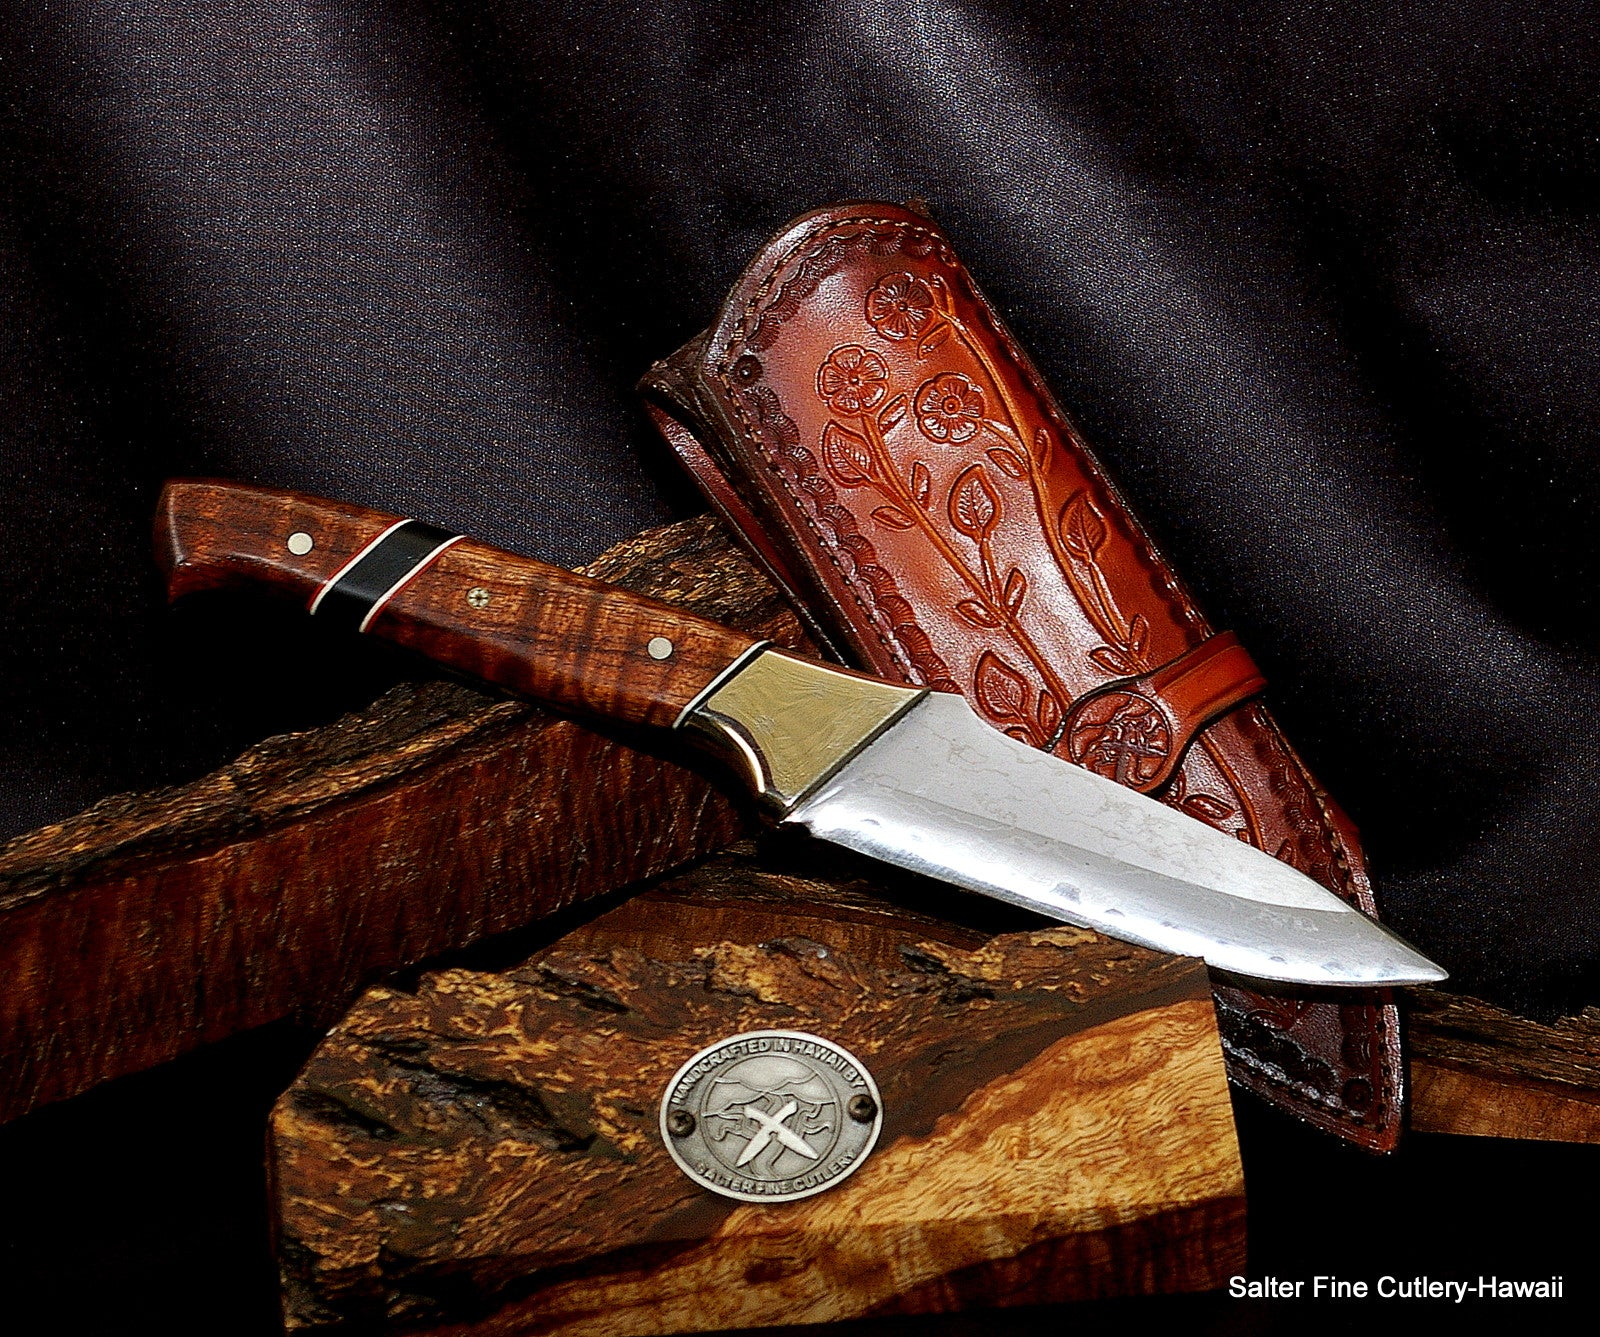 Hand forged Aogami core carbon steel hunting knife with decorative handcrafted handle and upgrade pigskin lined handcrafted sheath by Salter Fine Cutlery